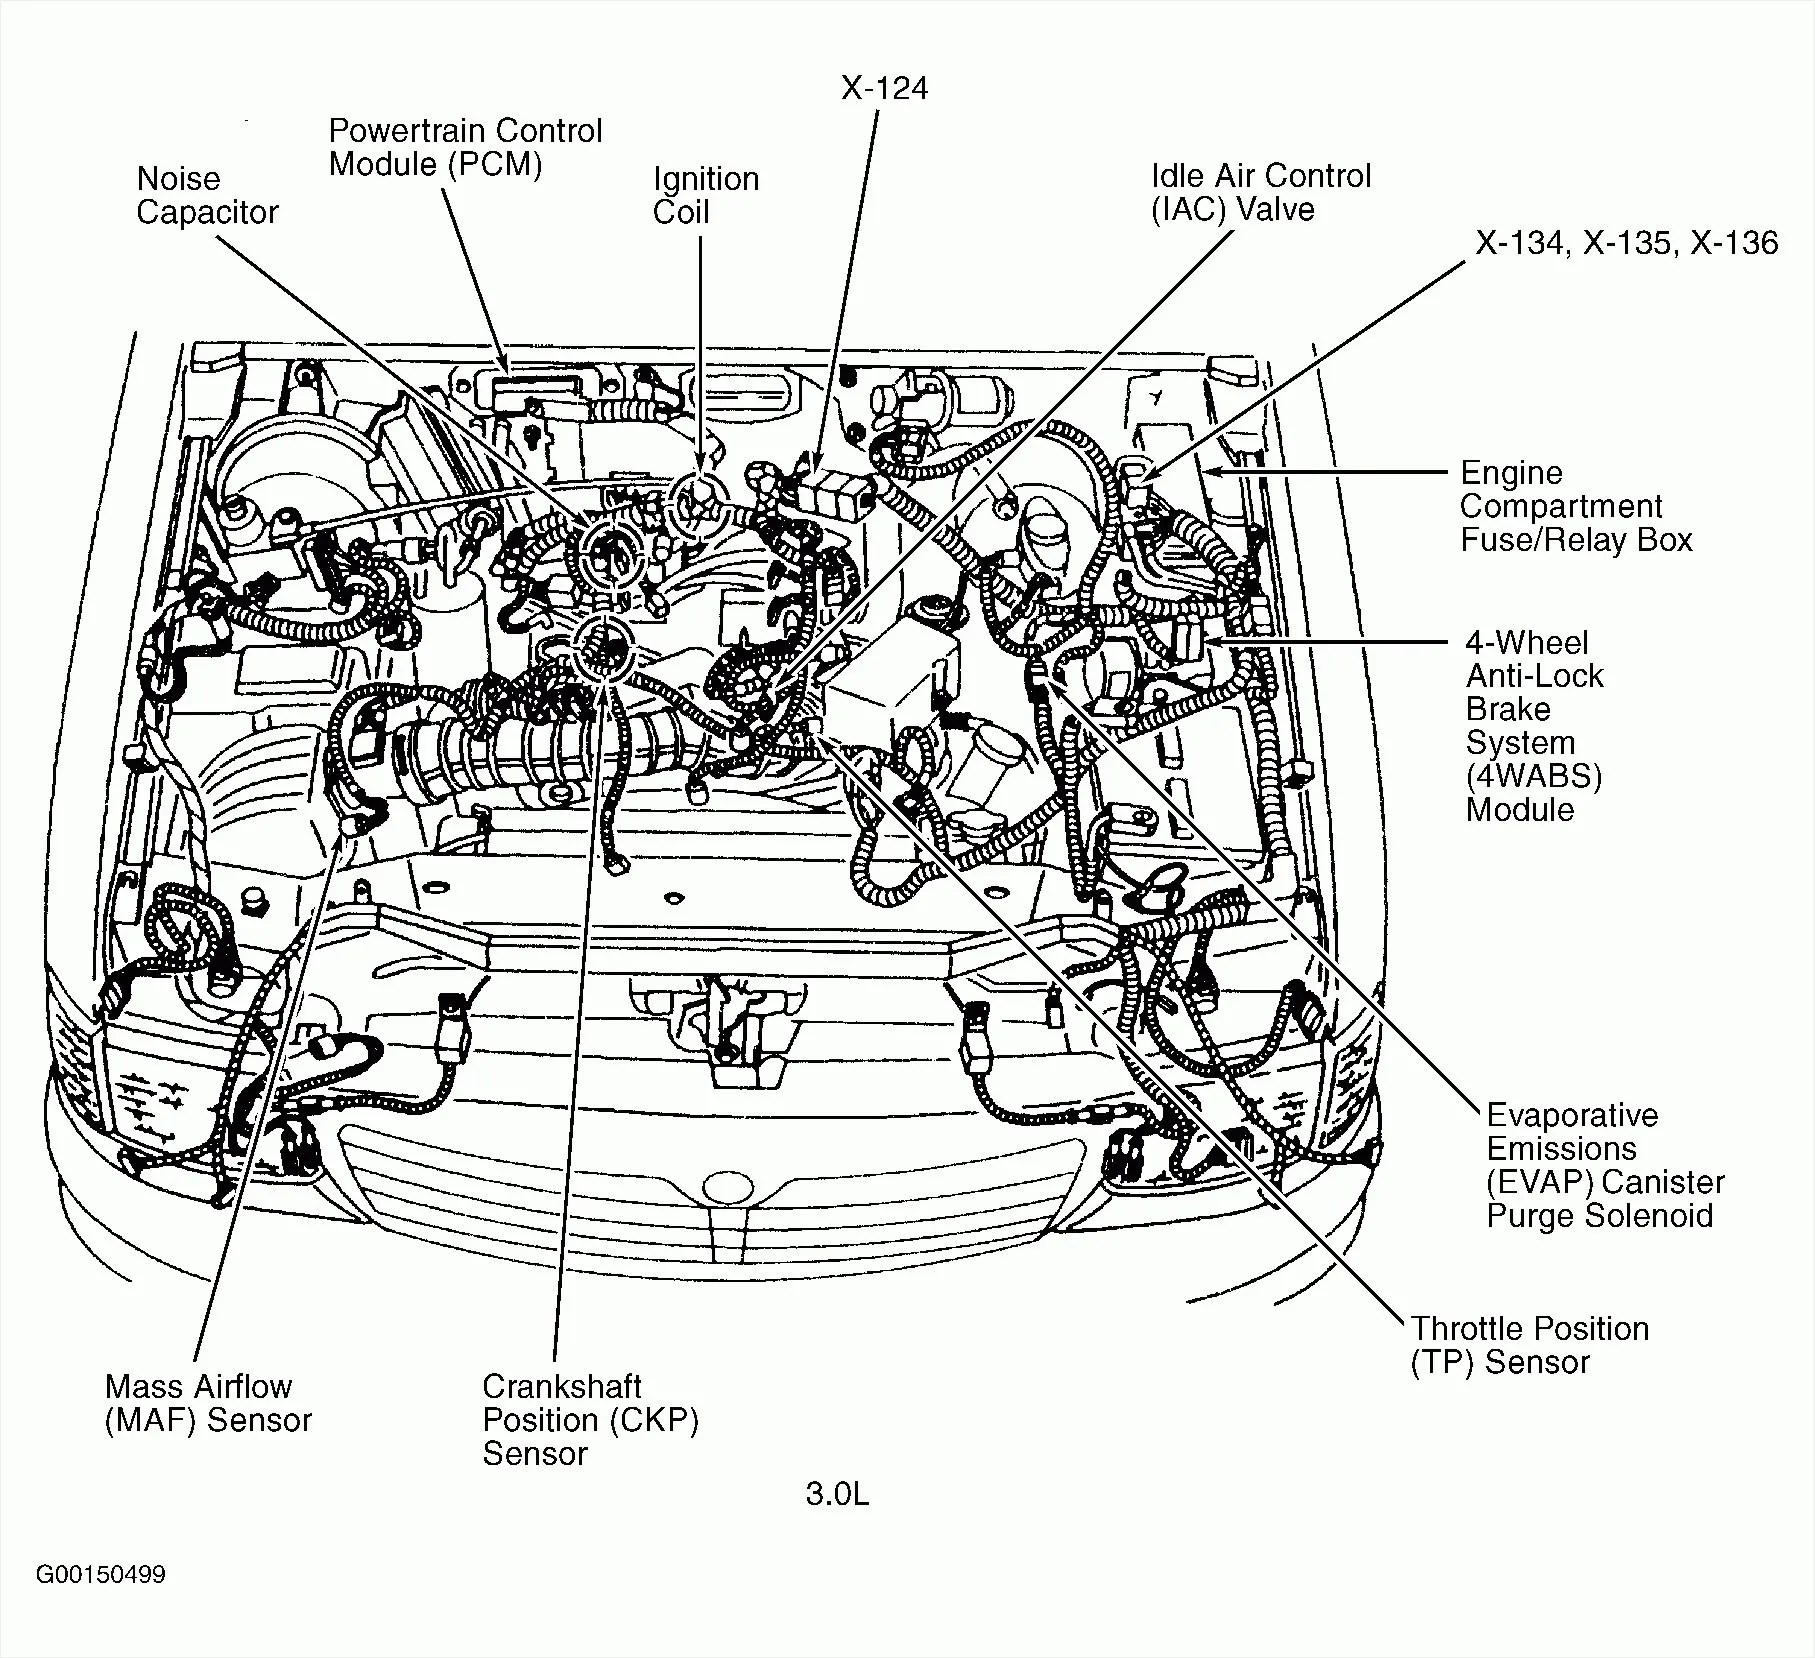 hight resolution of 1999 chevy monte carlo engine diagram schematic diagram 1999 chevy monte carlo engine diagram